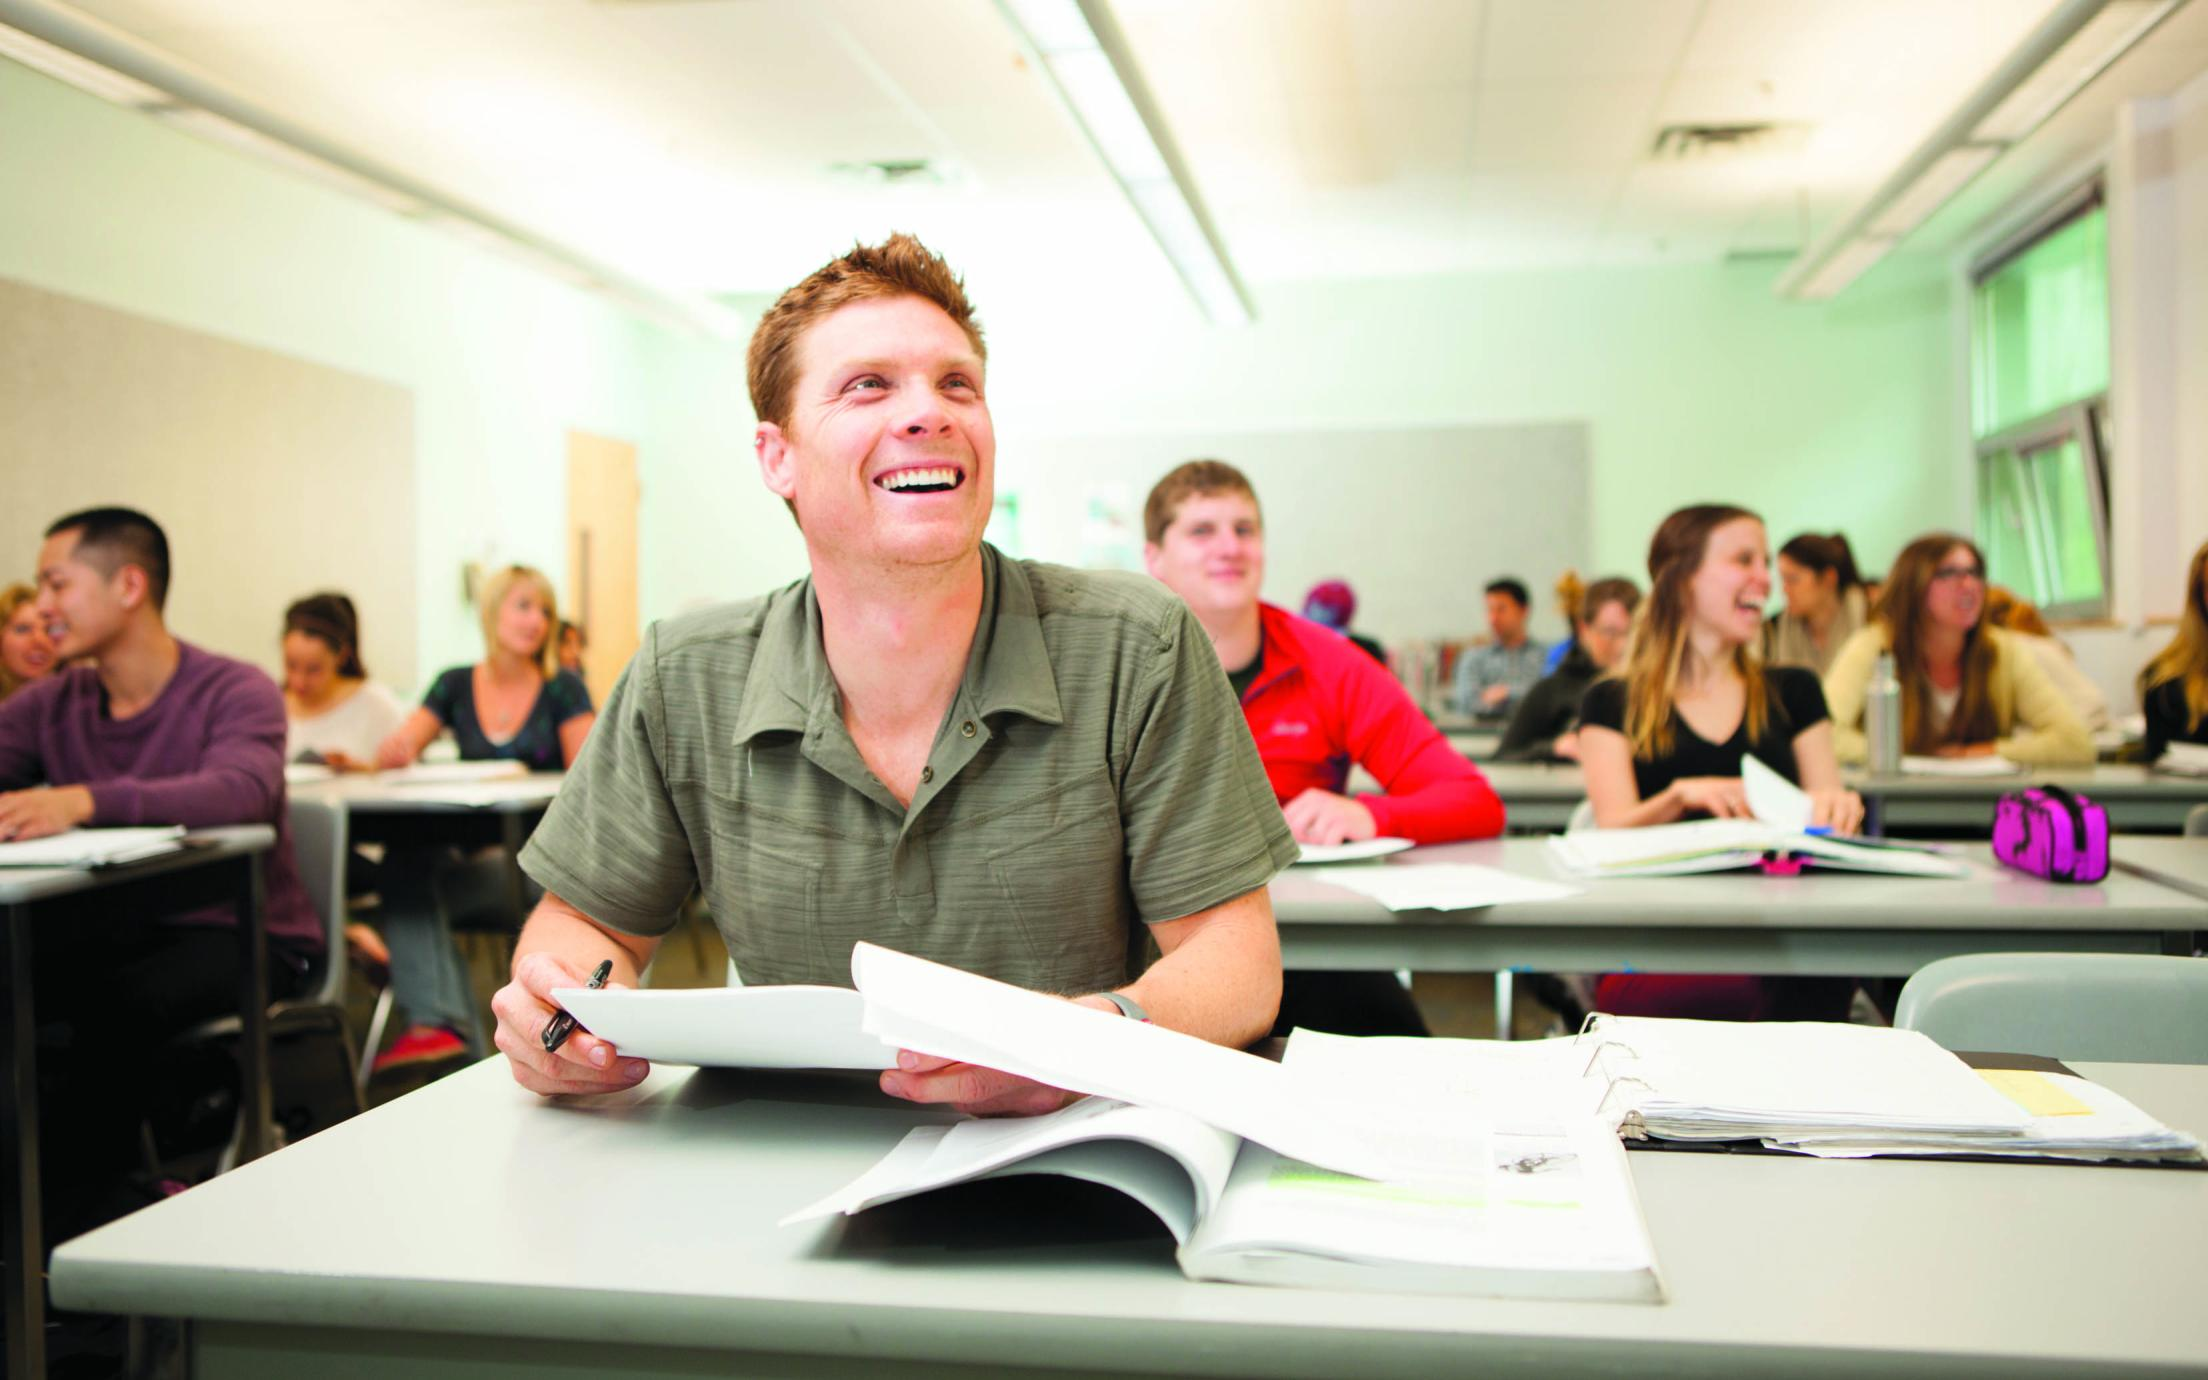 Students of the Bachelor of Education - Post Baccalaureate Degree in class